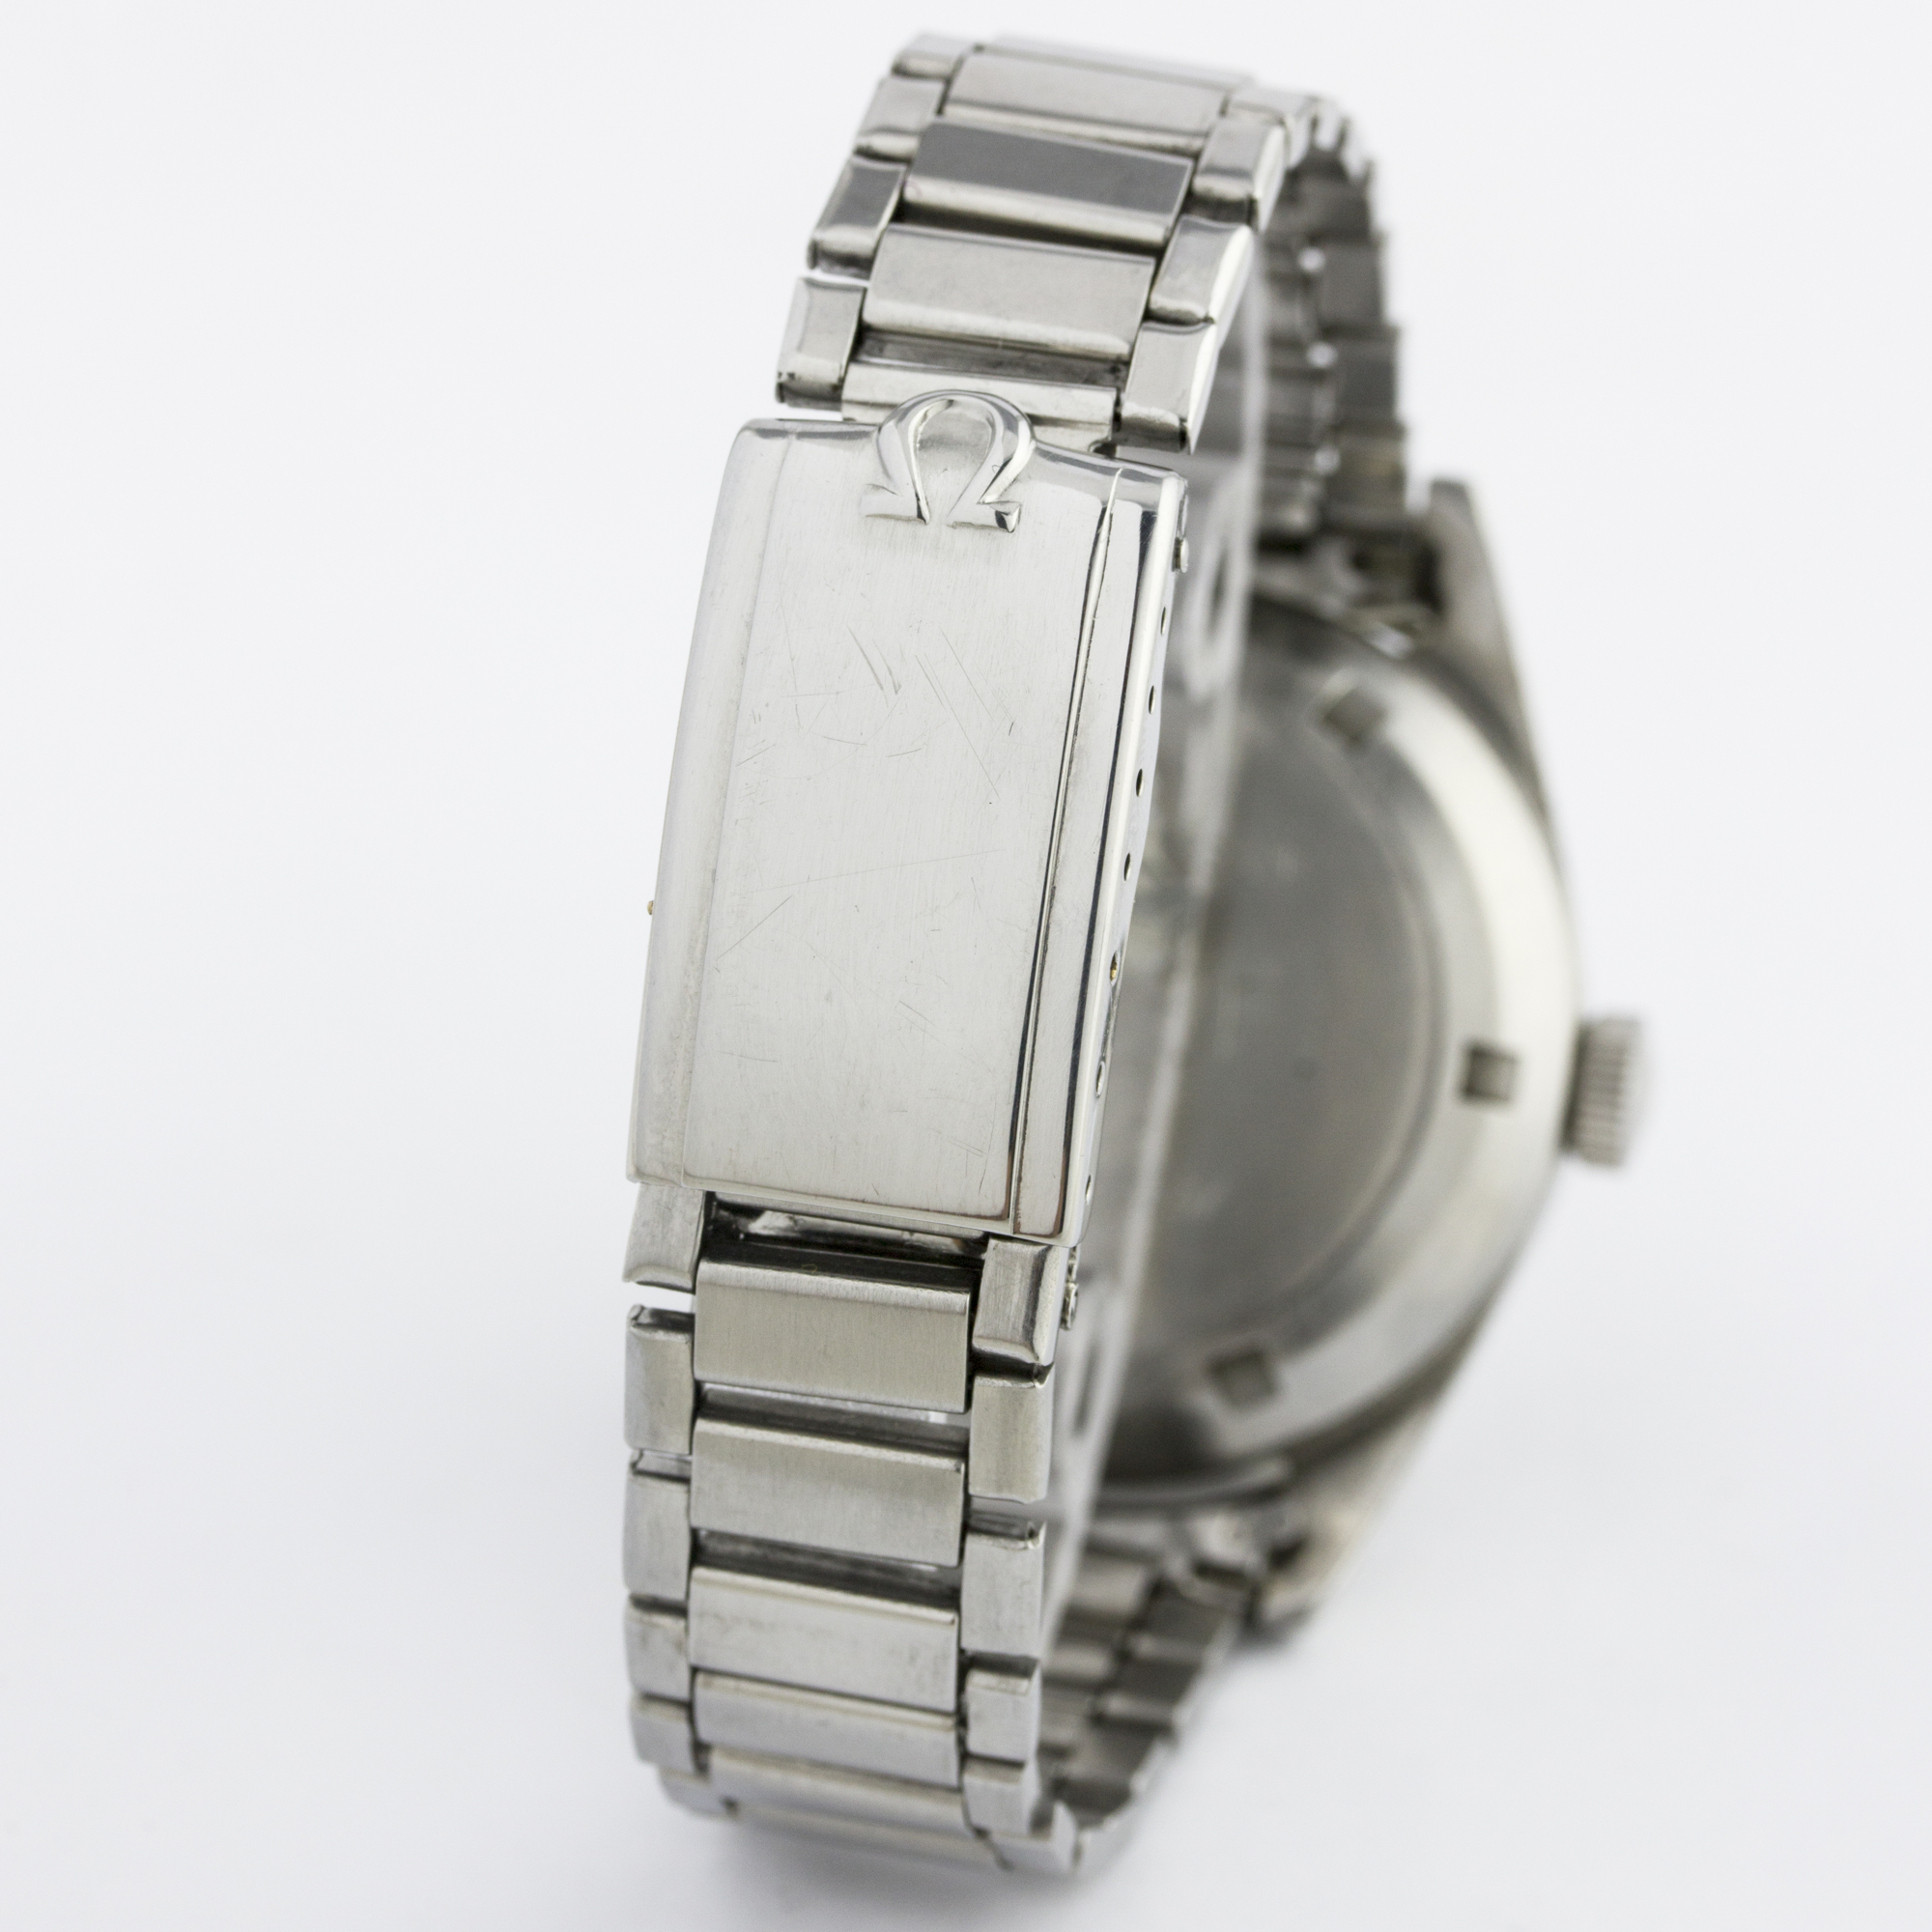 Lot 267 - A RARE GENTLEMAN'S STAINLESS STEEL OMEGA SEAMASTER P.A.F. BRACELET WATCH DATED 1964, REF. ST 135.004